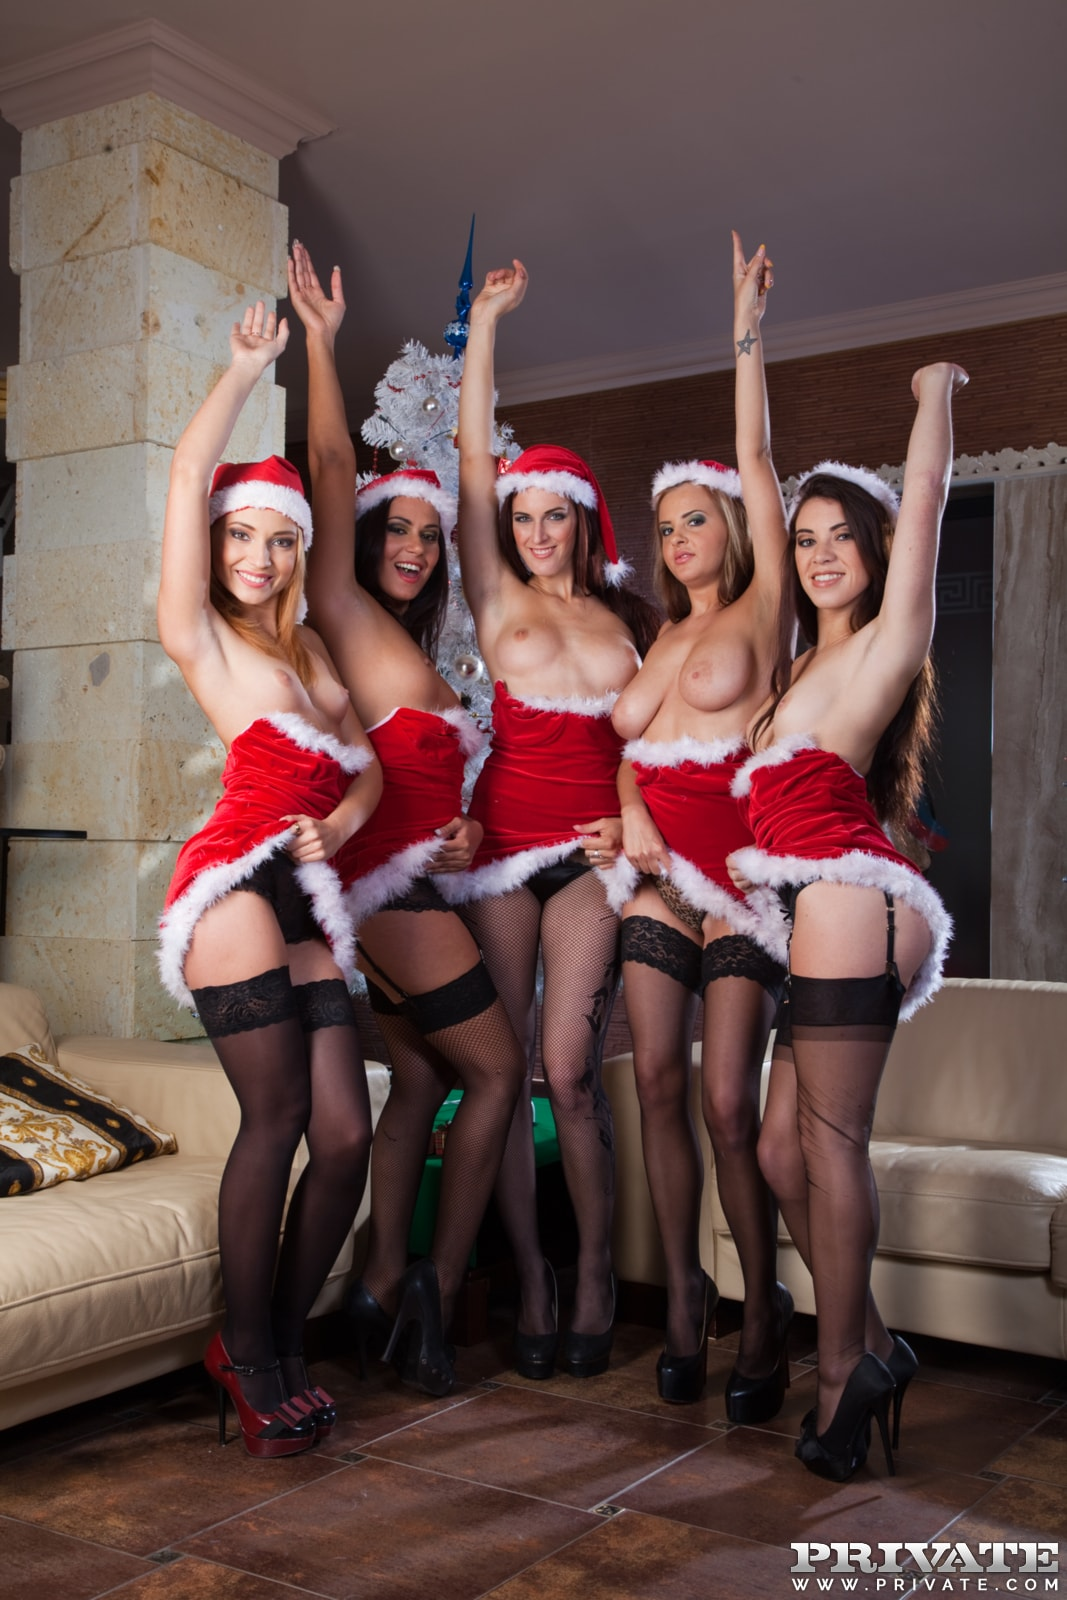 a-christmas-orgy-with-candy-alexa-nataly-von-tiffany-doll-5659468-2385443396.jpg